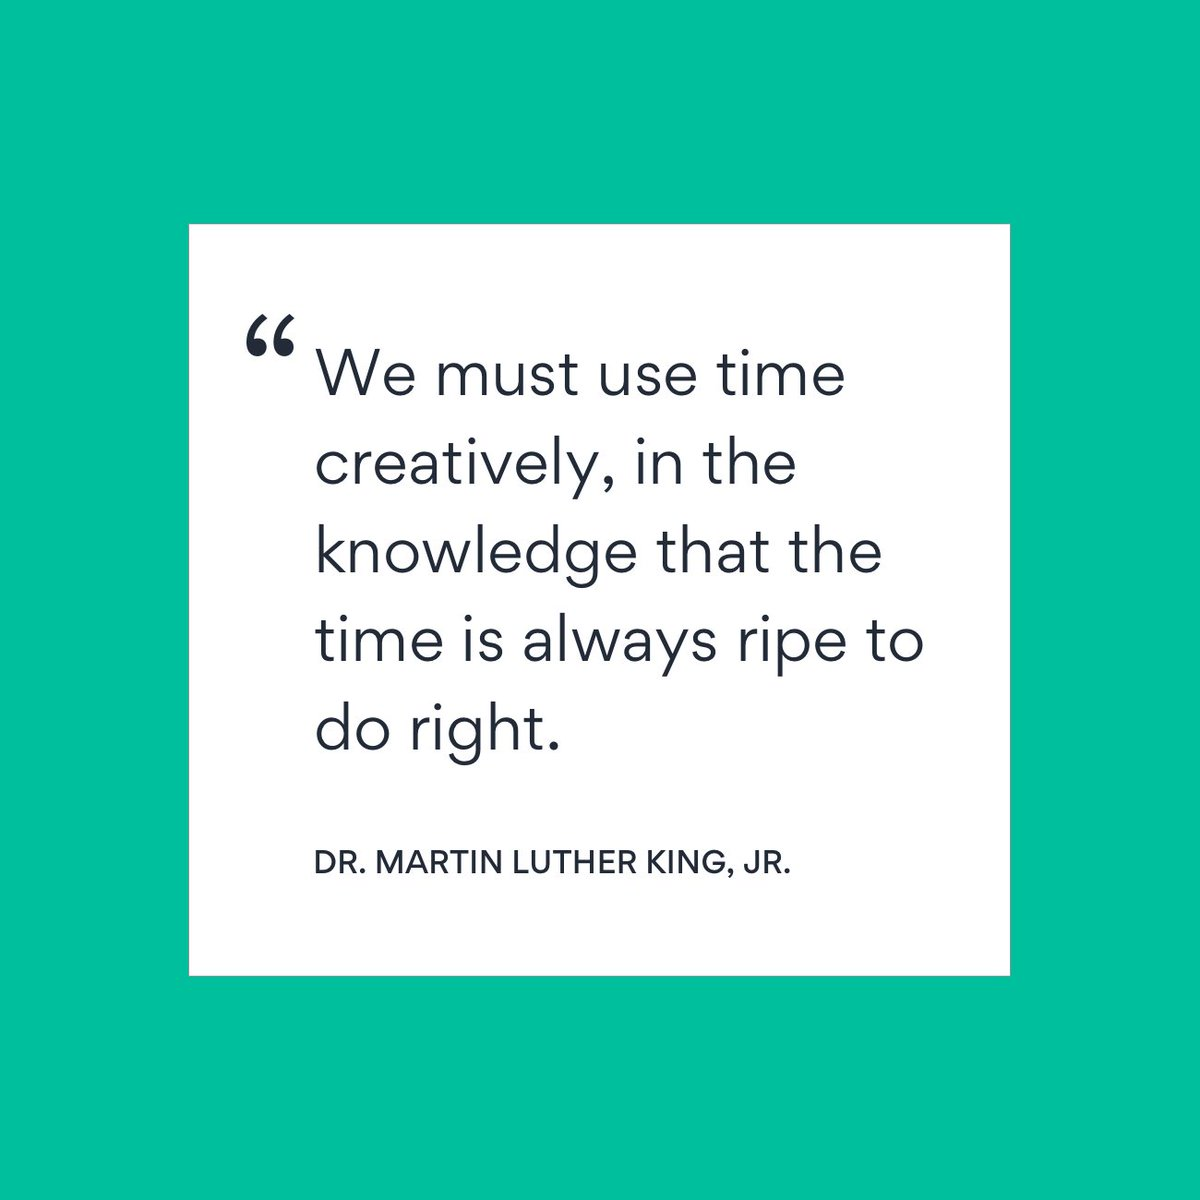 On #MLKDay, Dr. Martin Luther King, Jr.'s legacy of service reminds us that small, consistent acts make a big difference. As we work in service of our communities, let's ensure that we keep Dr. King's ideals alive and take care of each other, take responsibility, & take action.